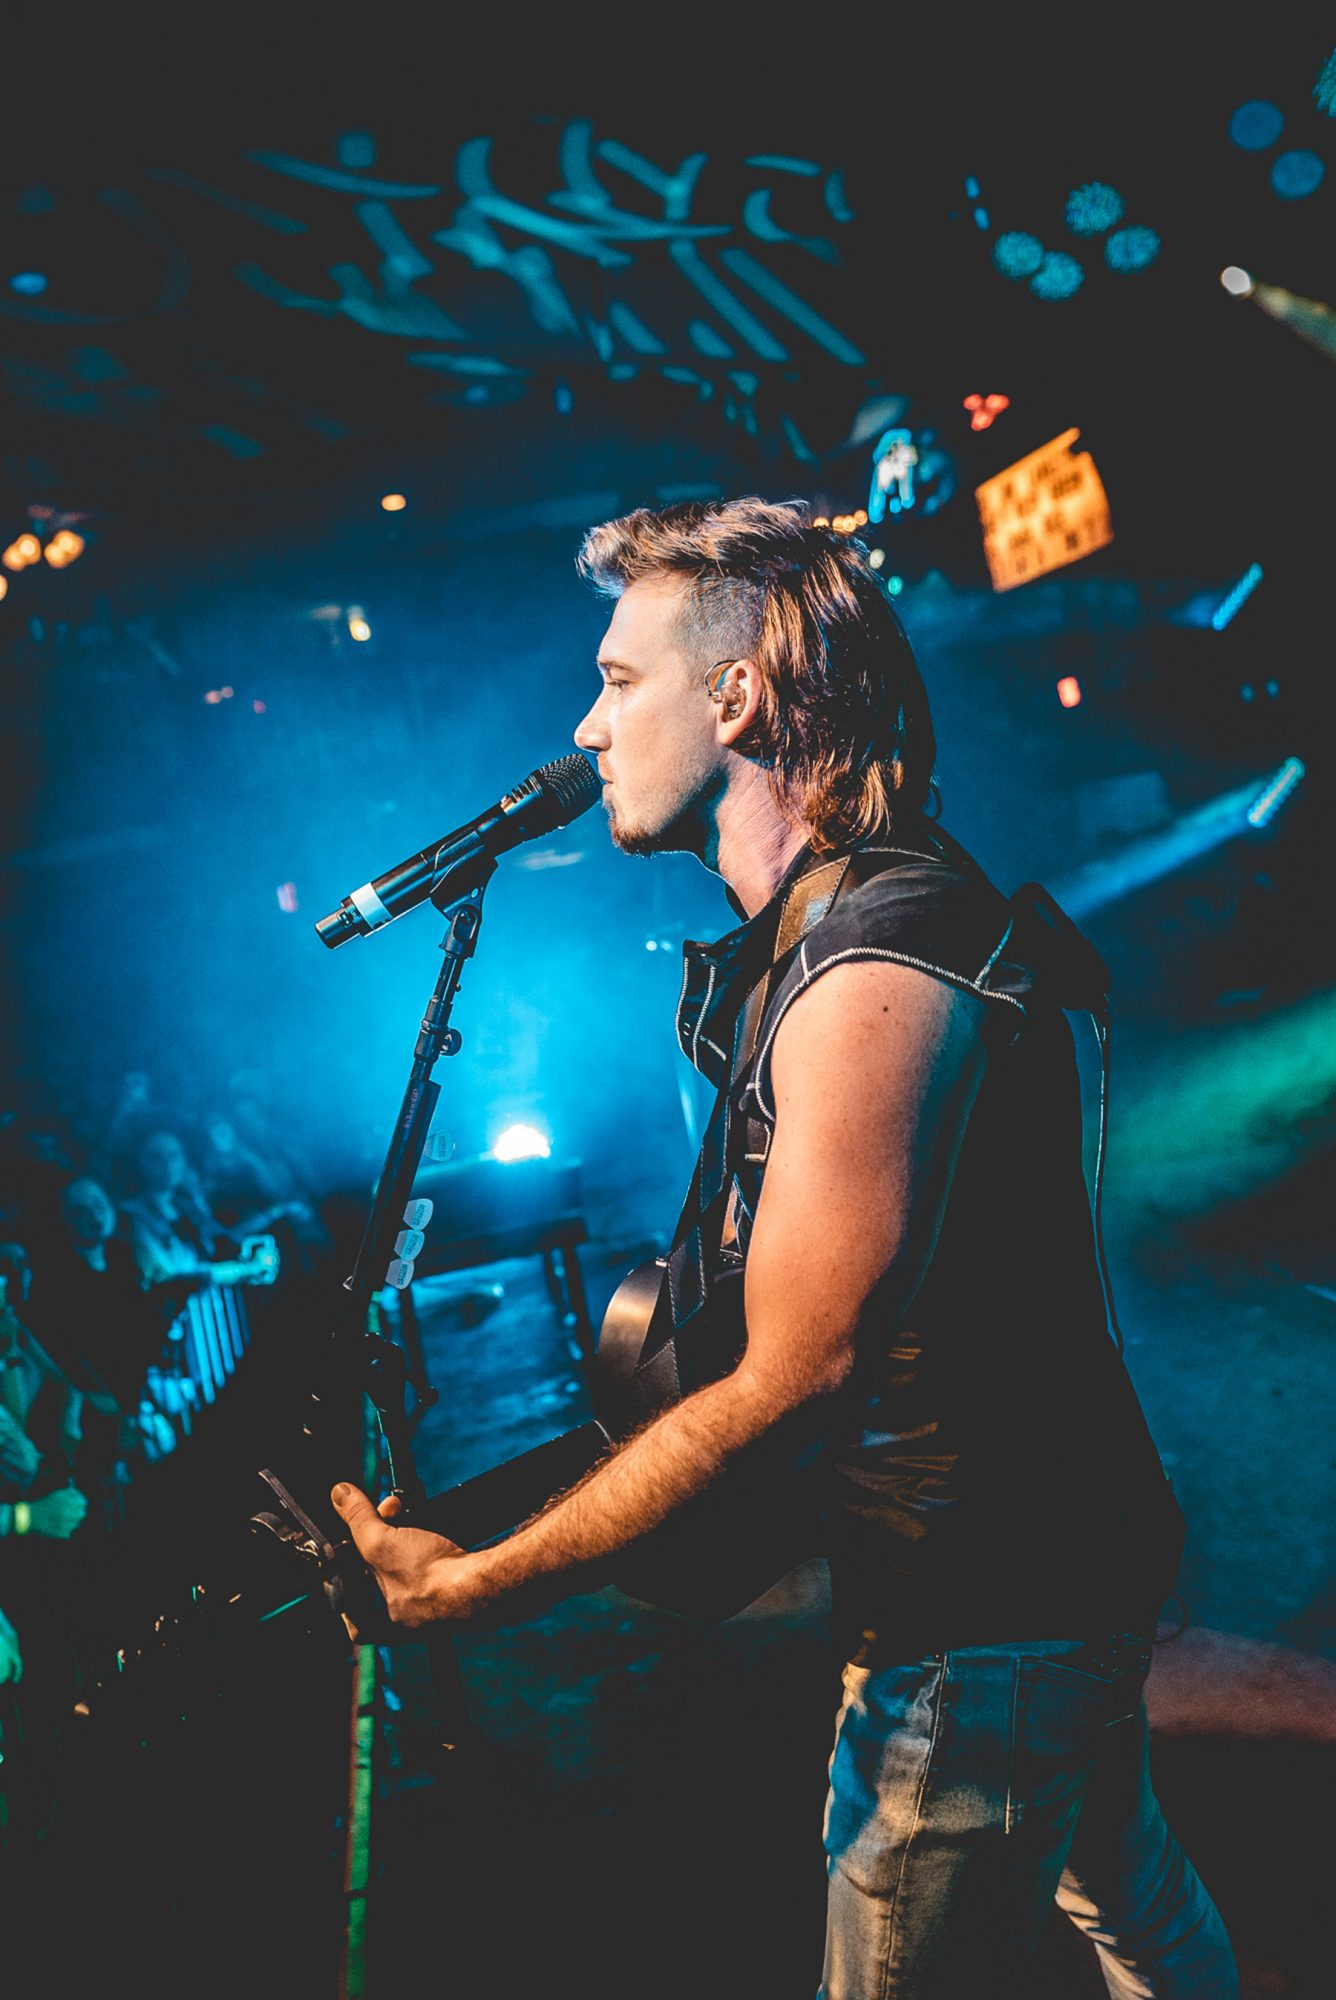 Morgan Wallen Knocks Em Out Not Back On Tour With His Hit Whiskey Glasses People Com